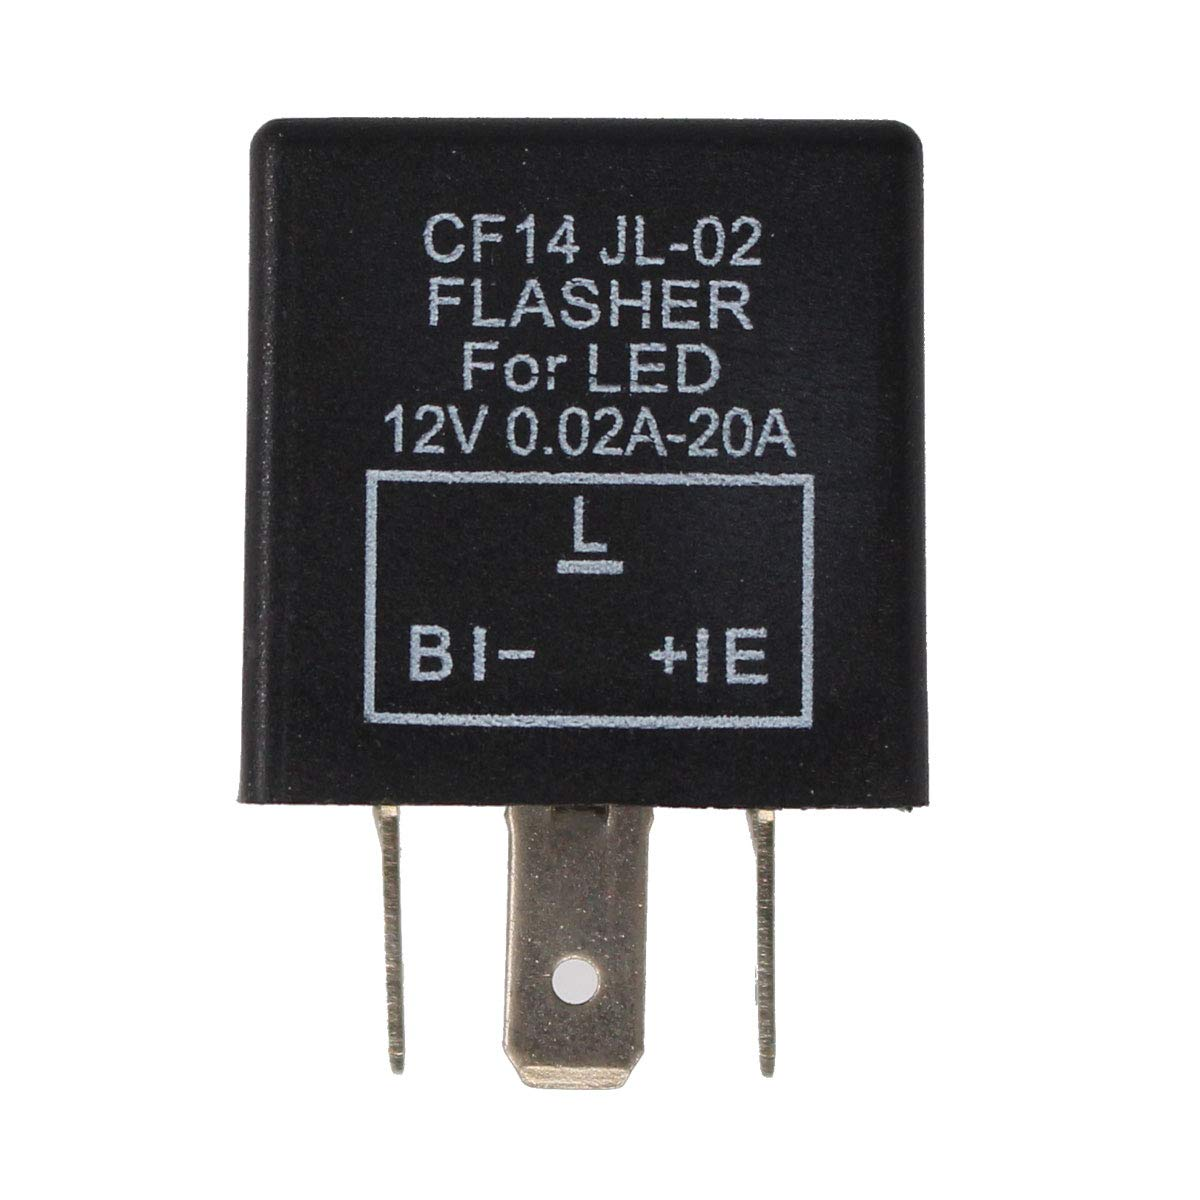 XtremeAmazing 3 Pin CF14 EP35 Electronic Flasher Relay For Car Vehicle LED Turn Signal Light Bulbs Hyper Blink Flash Fix